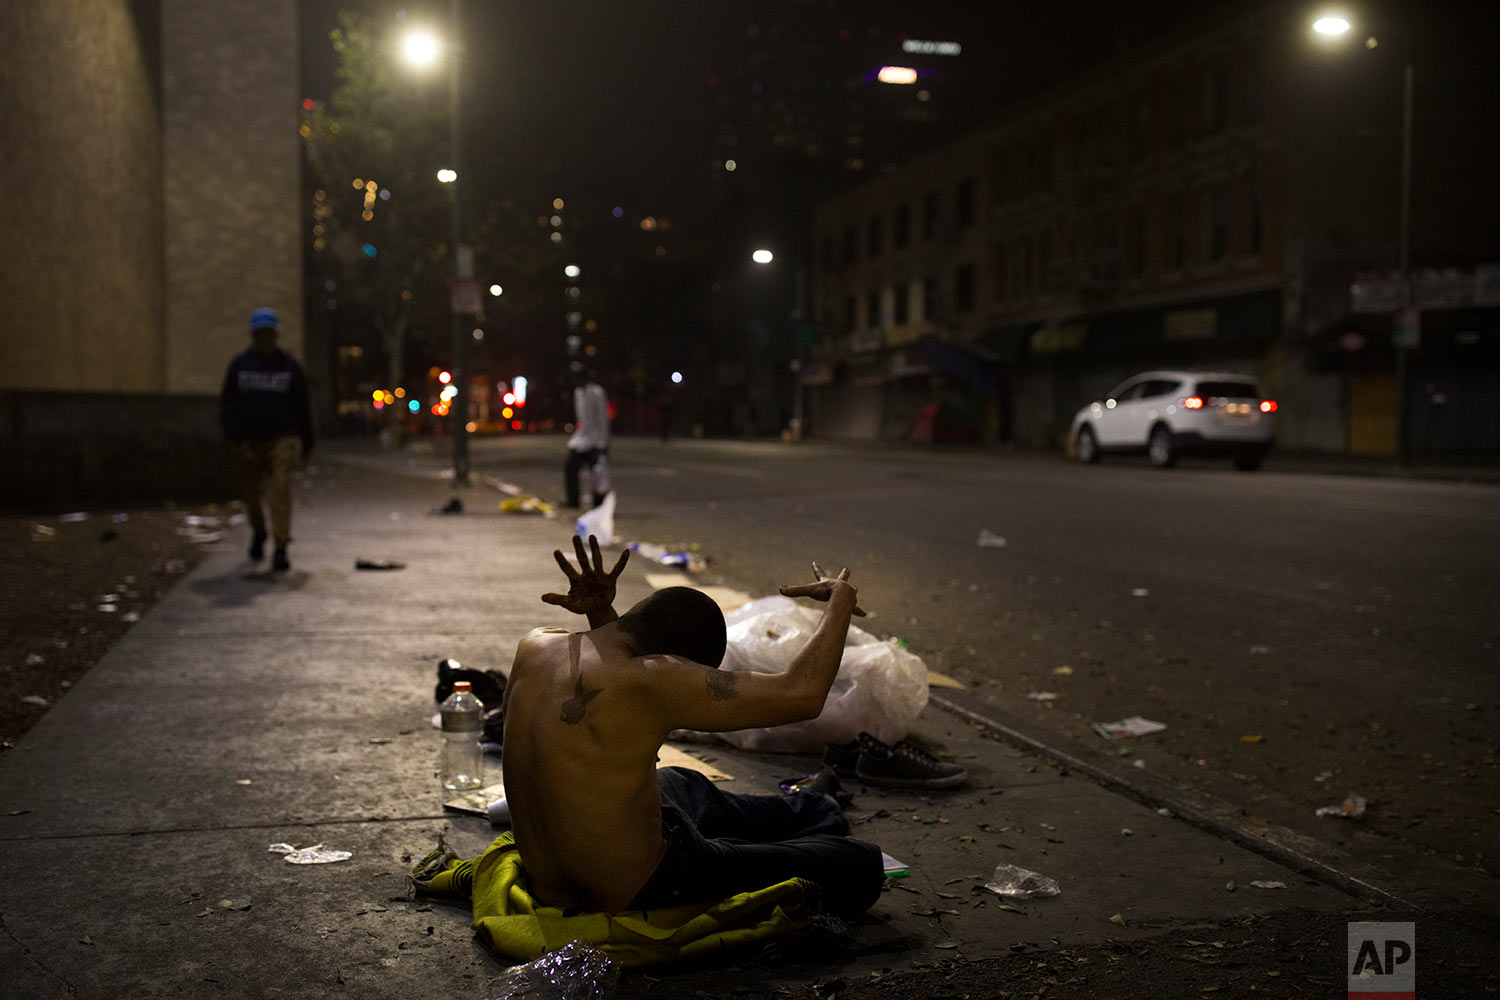 A homeless drug addict twists his body while sitting on a sidewalk Saturday, Oct. 28, 2017, in the Skid Row area of downtown Los Angeles. (AP Photo/Jae C. Hong)